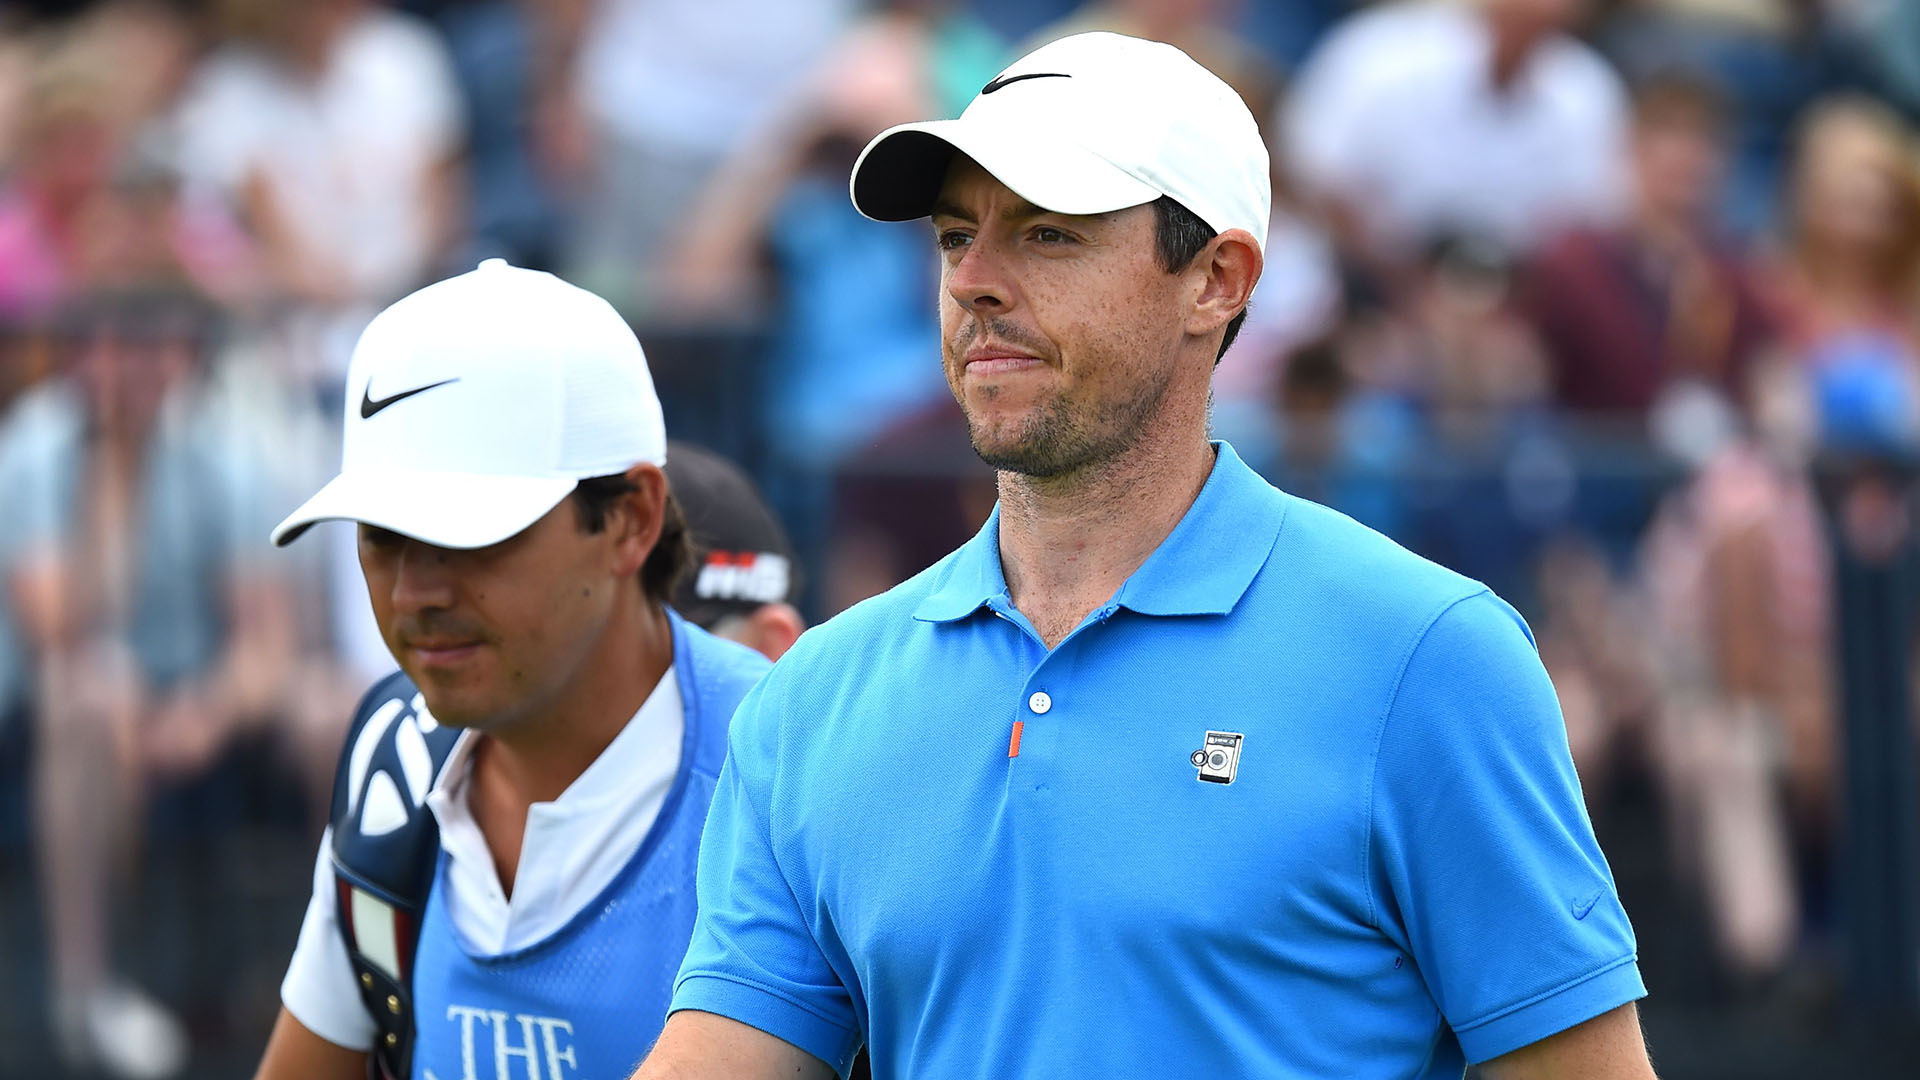 British Open betting tips: Odds favor Rory McIlroy, but Royal Portrush field is wide-open